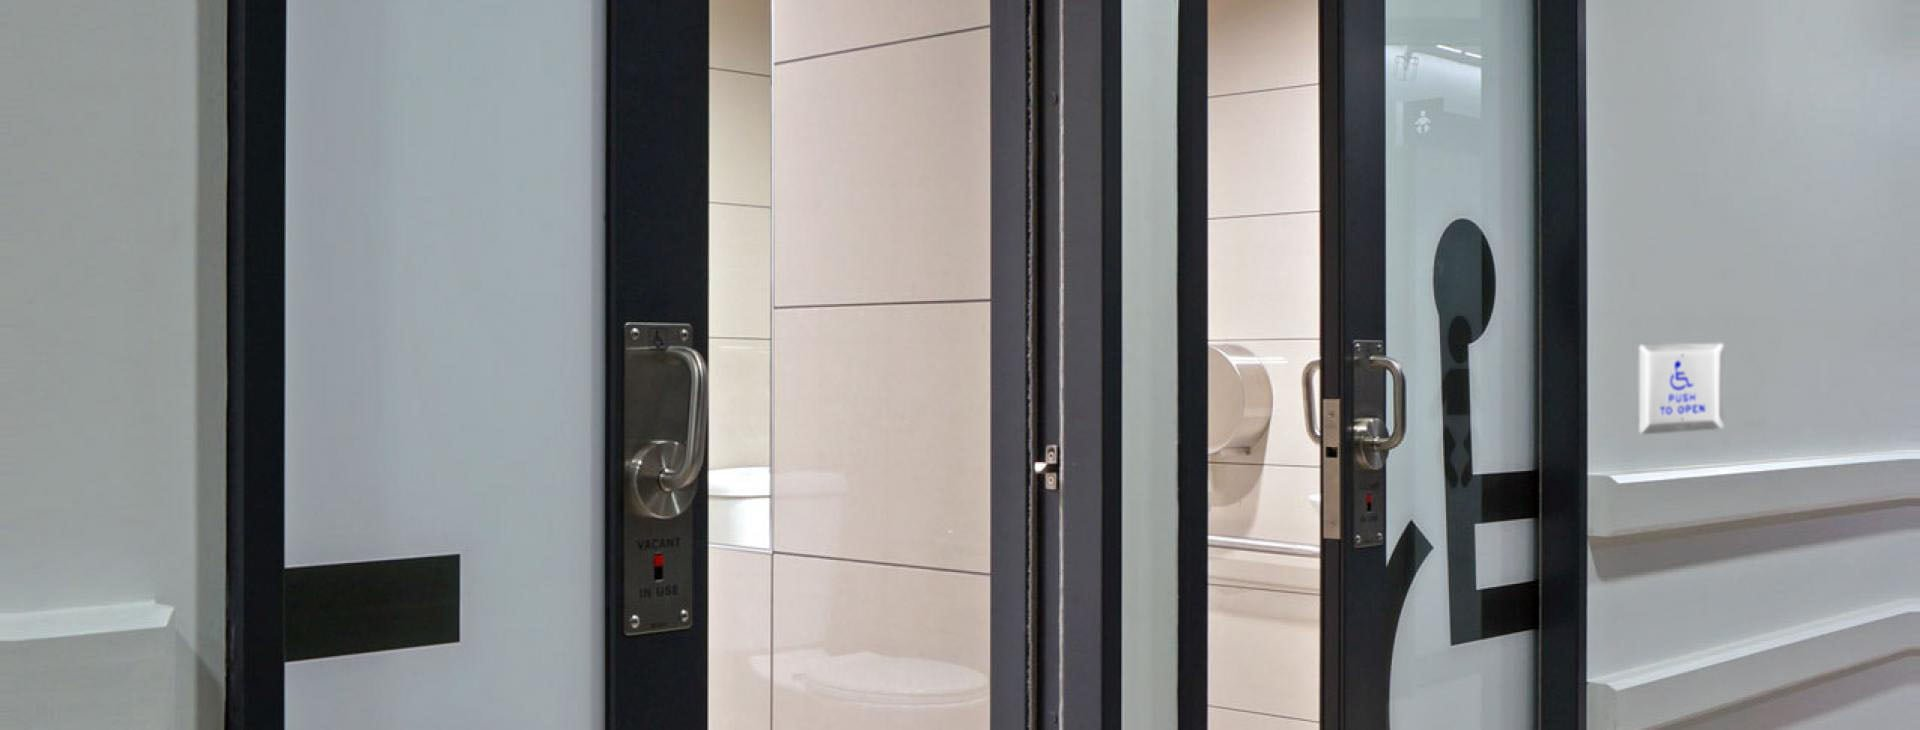 Automatic toilet Doors opener installation